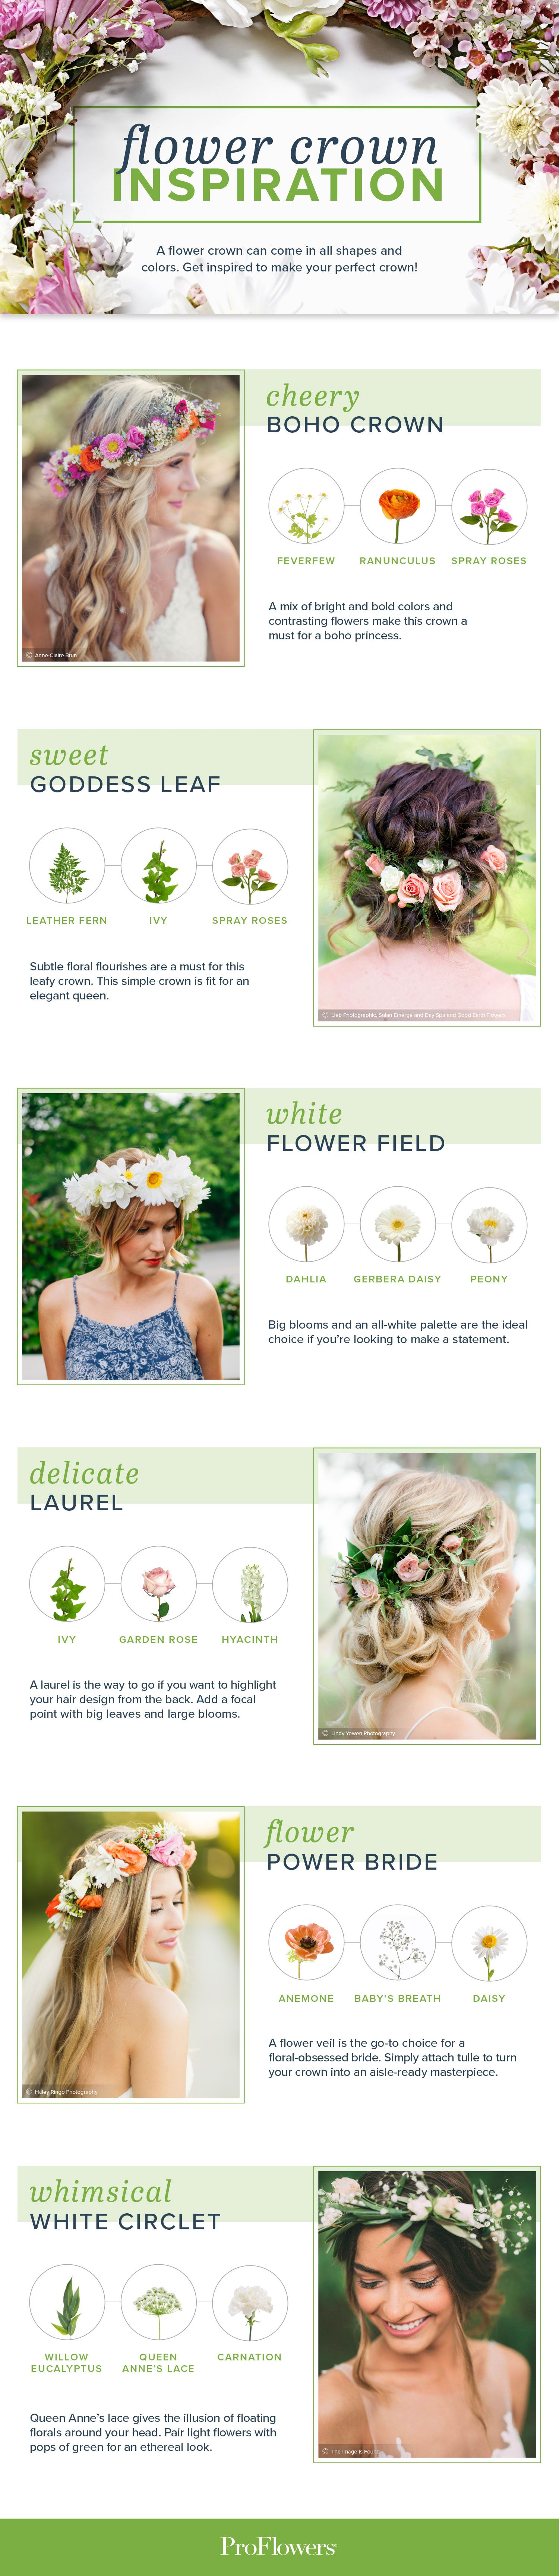 How To Make A Flower Crown In 4 Easy Steps Flower Crowns Crown